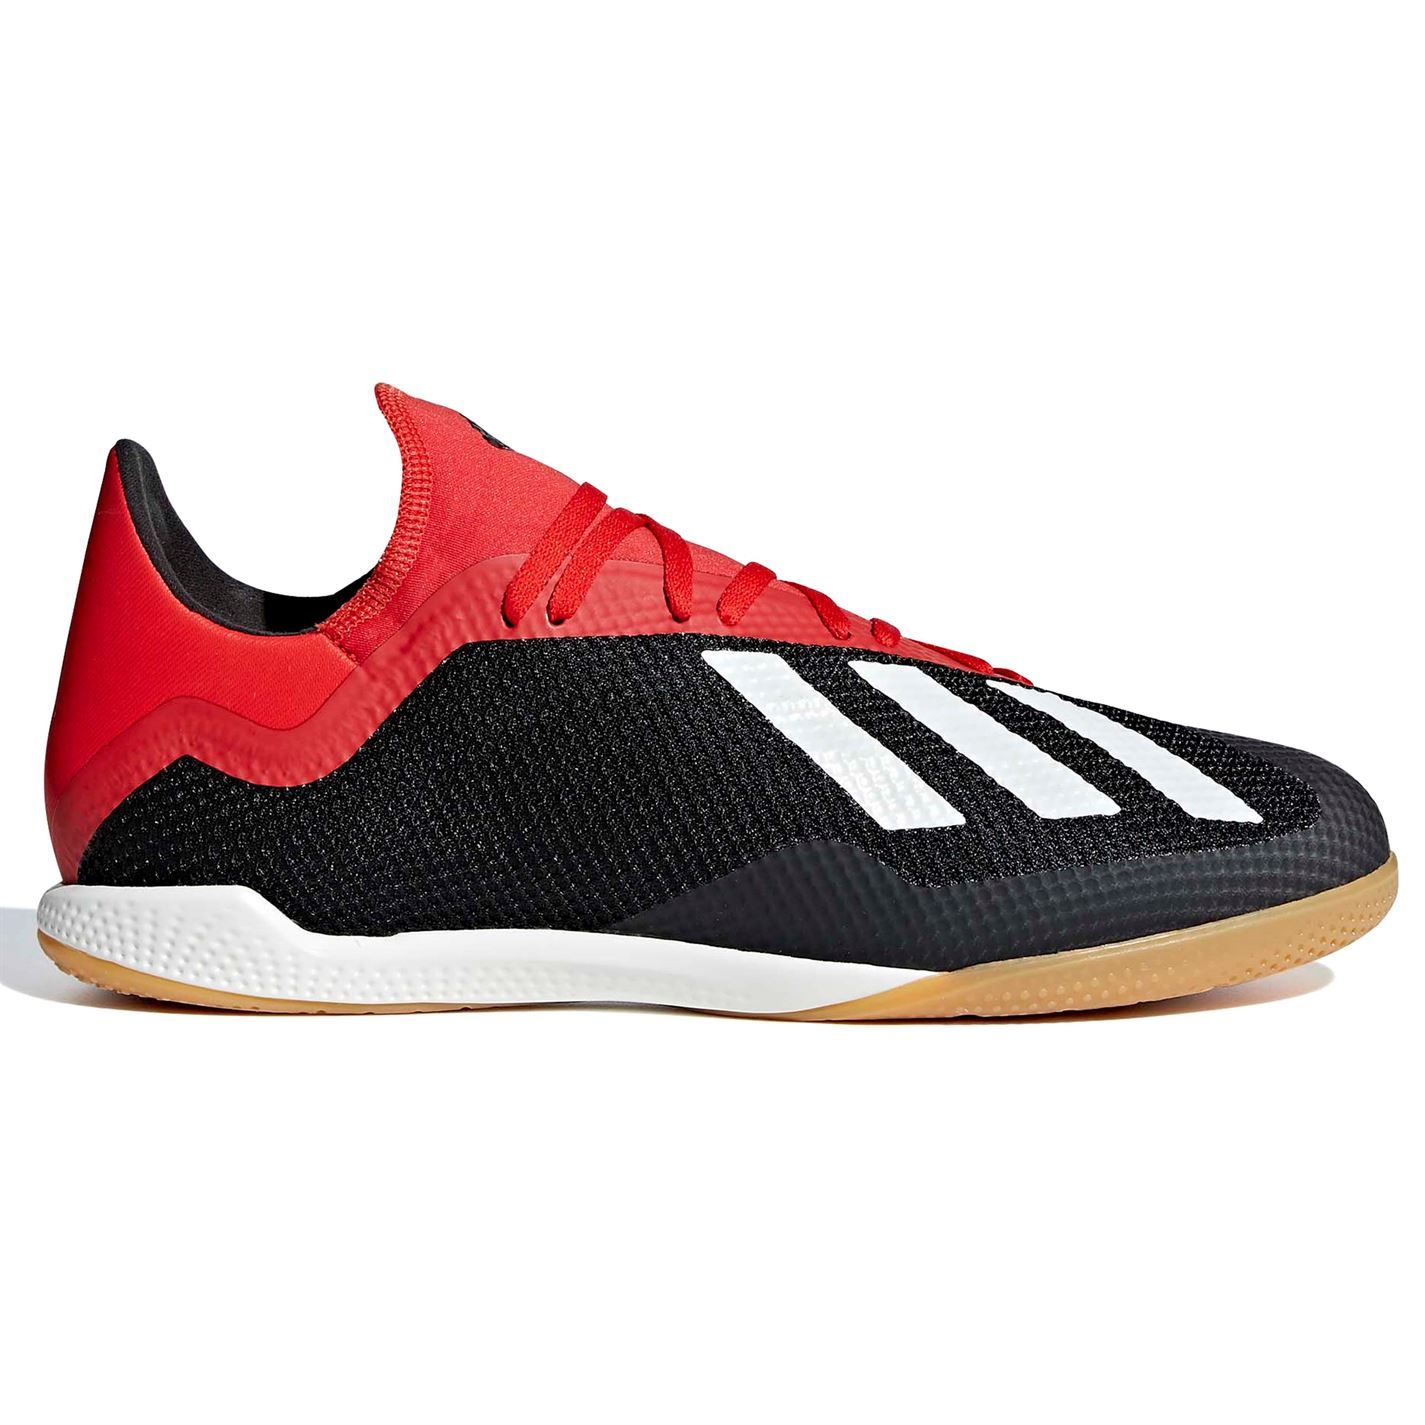 Details about adidas X Tango 18.3 Indoor Football Trainers Mens Soccer Futsal Shoes Sneakers